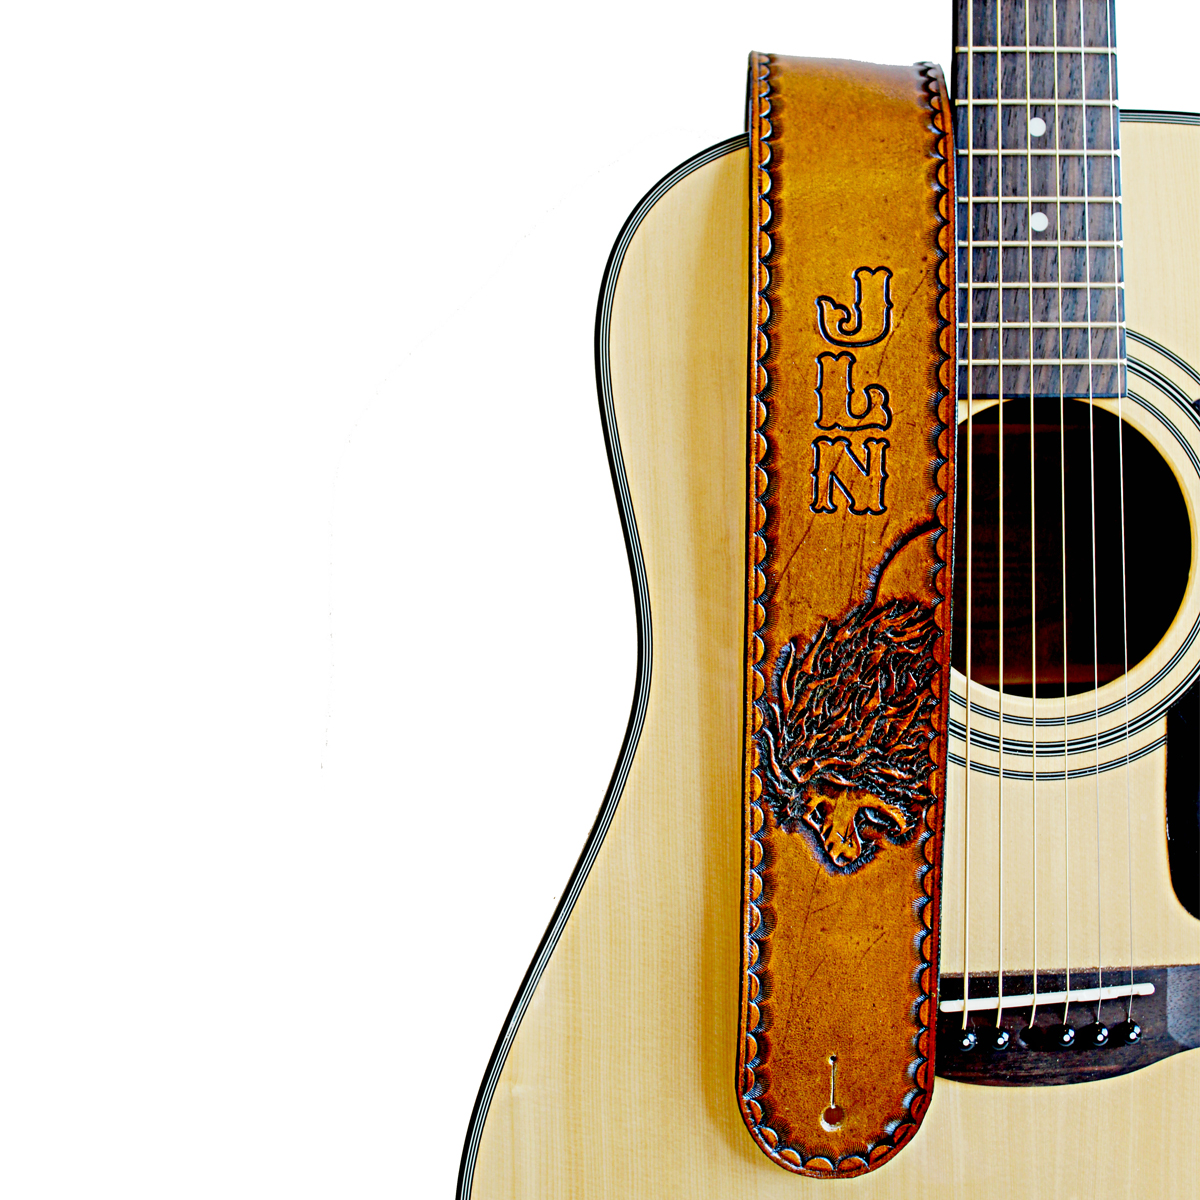 personalized-lion-leather-guitar-strap-the-leather-smithy_1